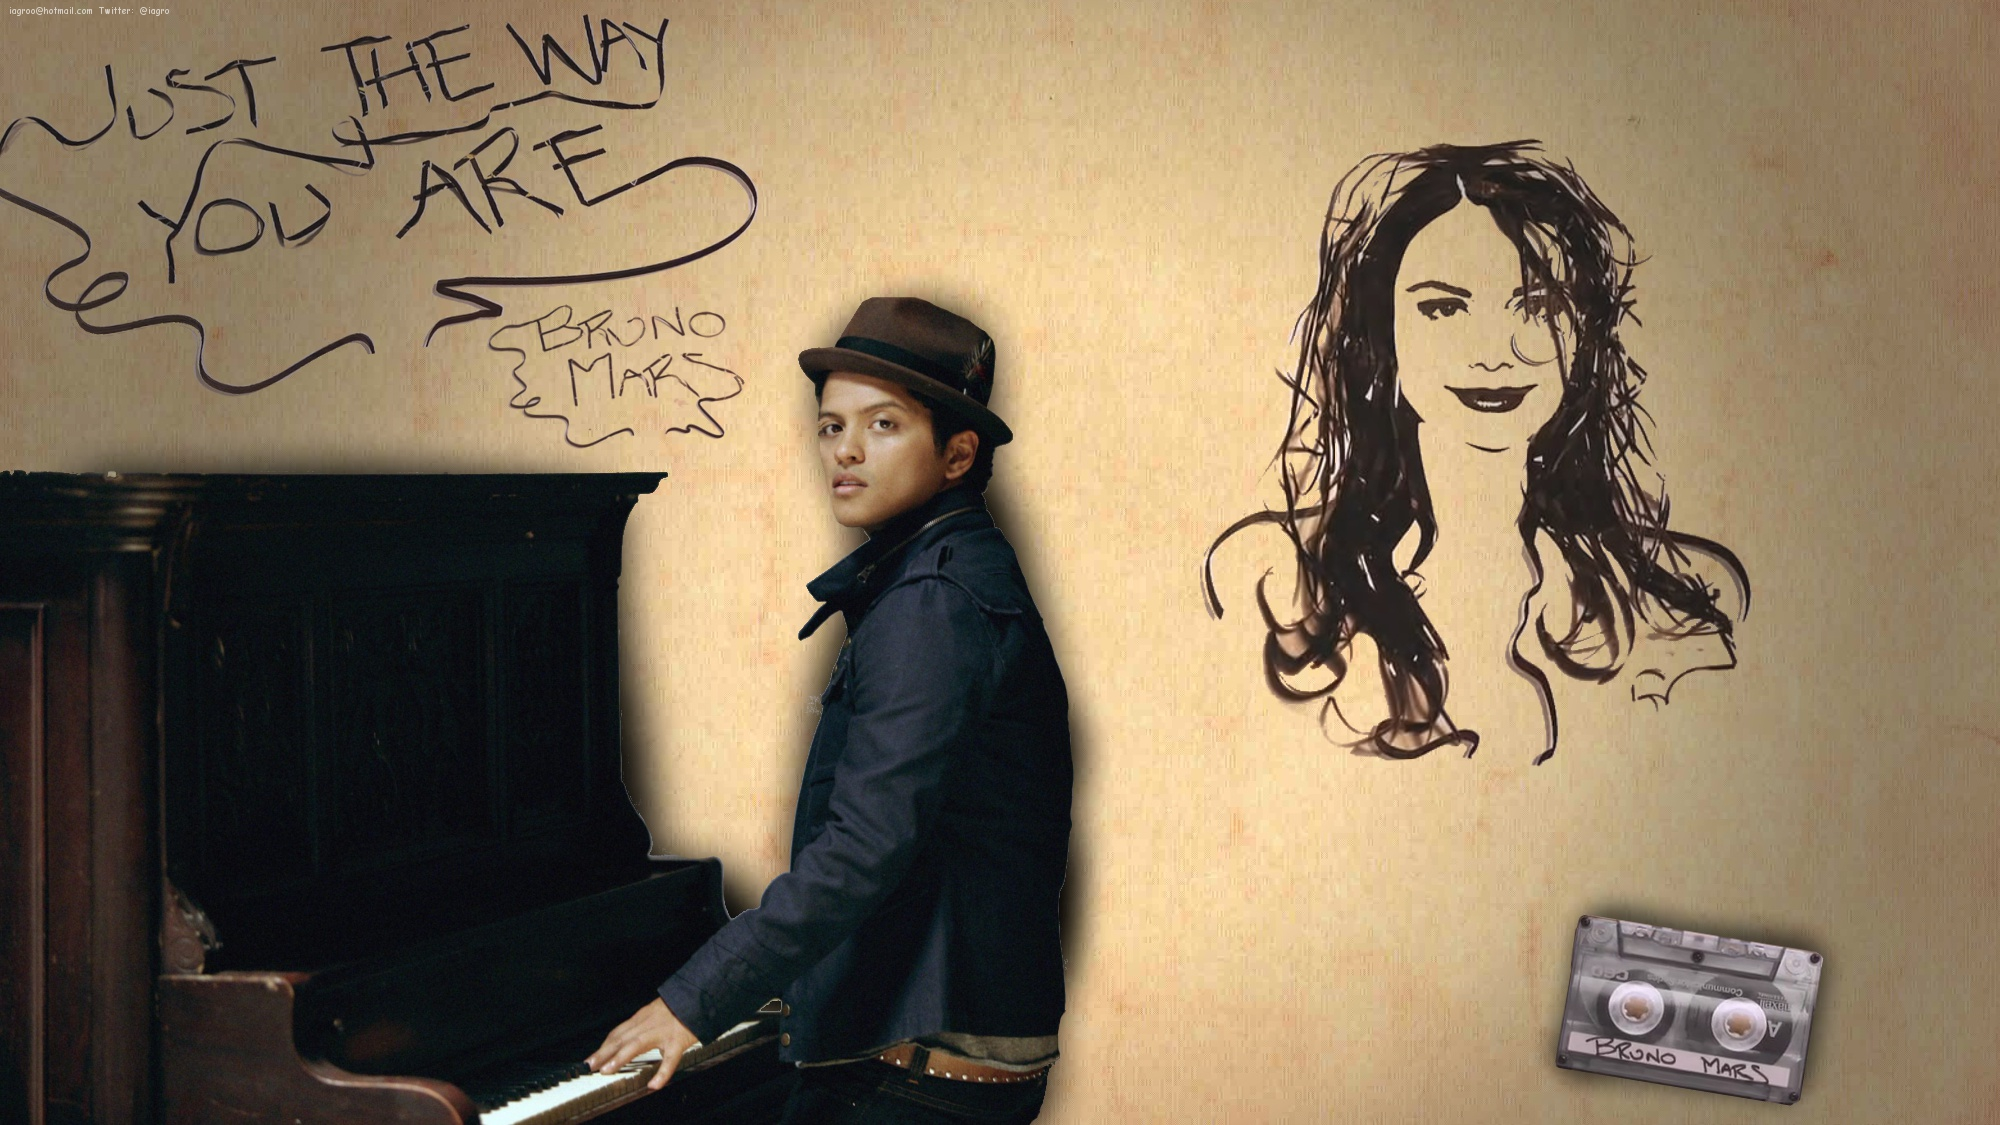 Bruno Mars Just The Way You Are - Bruno Mars Just The Way You Are